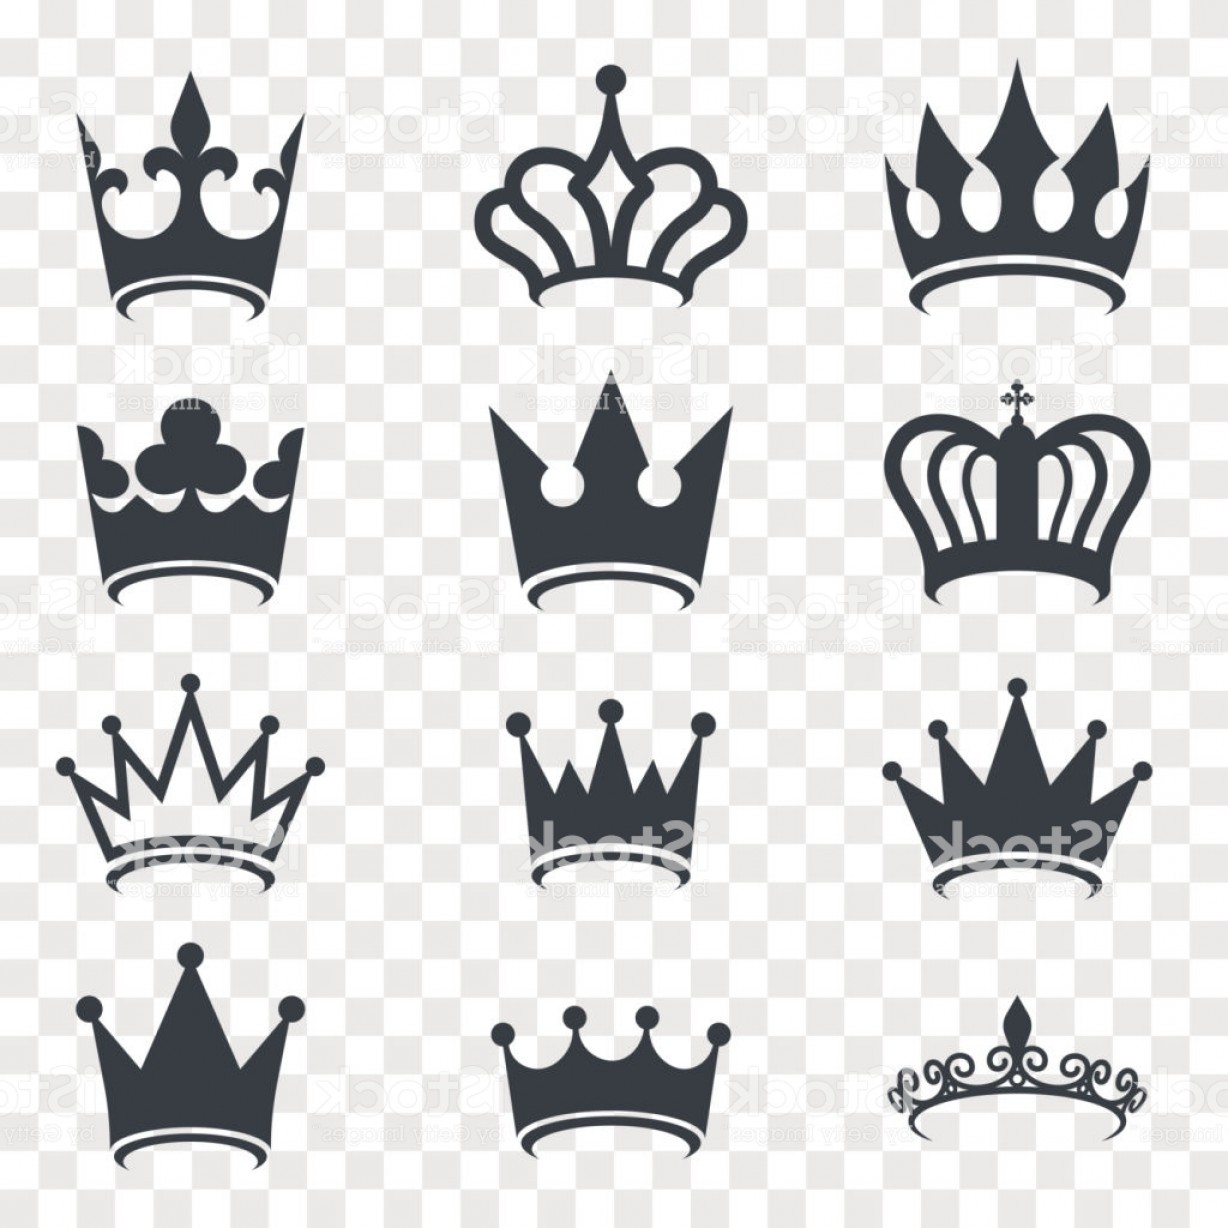 Transparent Queen Crown Vector: Black Crown Silhouette Isolated On Transparent Background Royal Crown Icons Gm